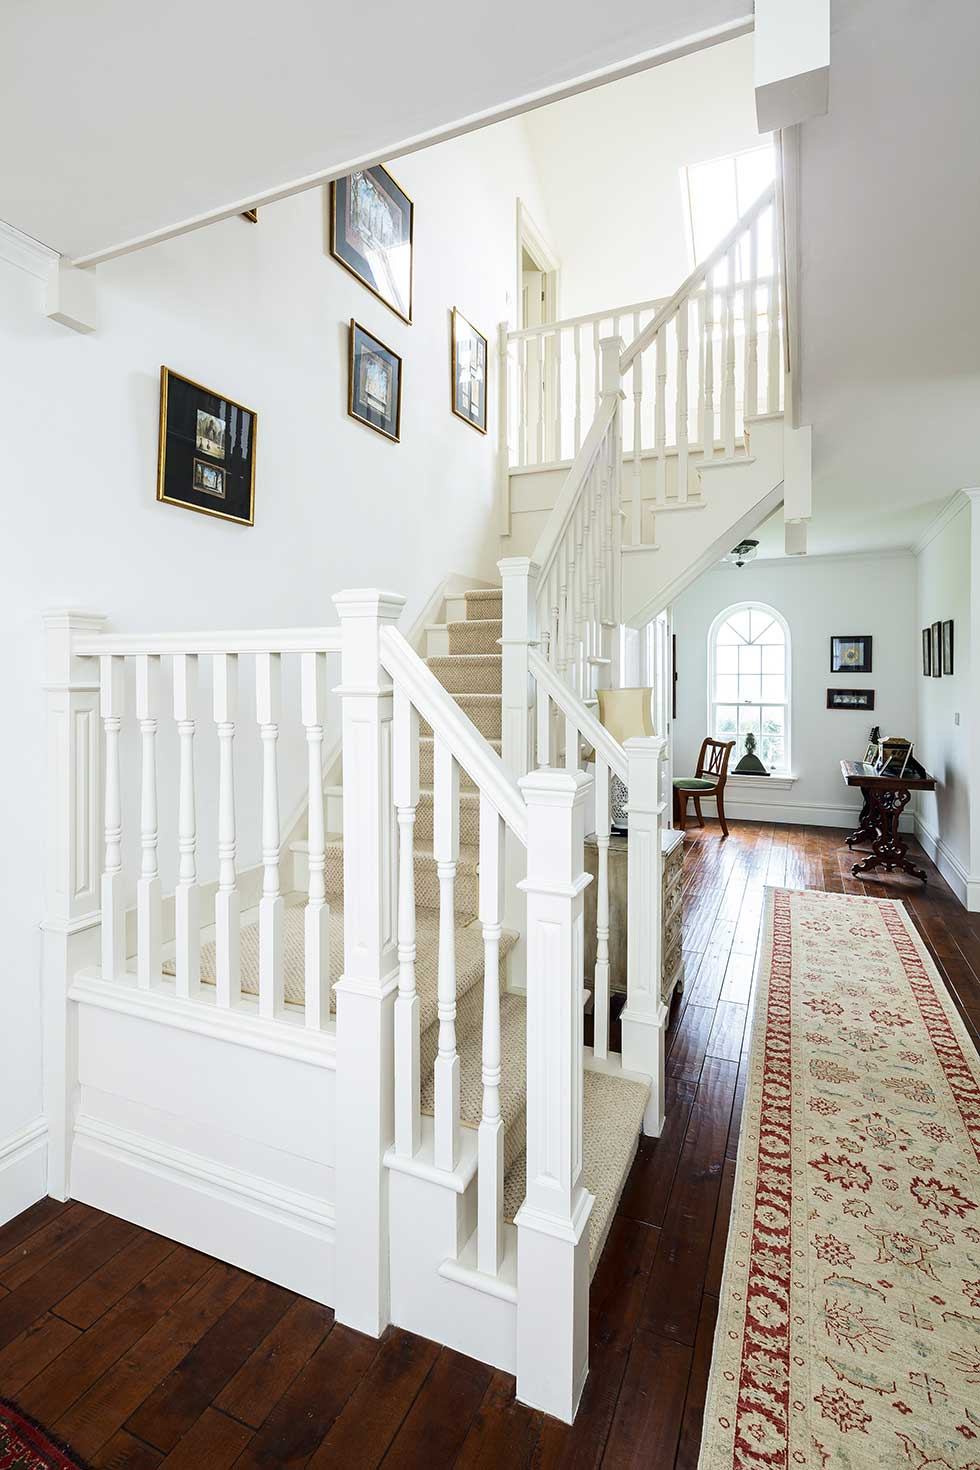 American-style self build staircase turning